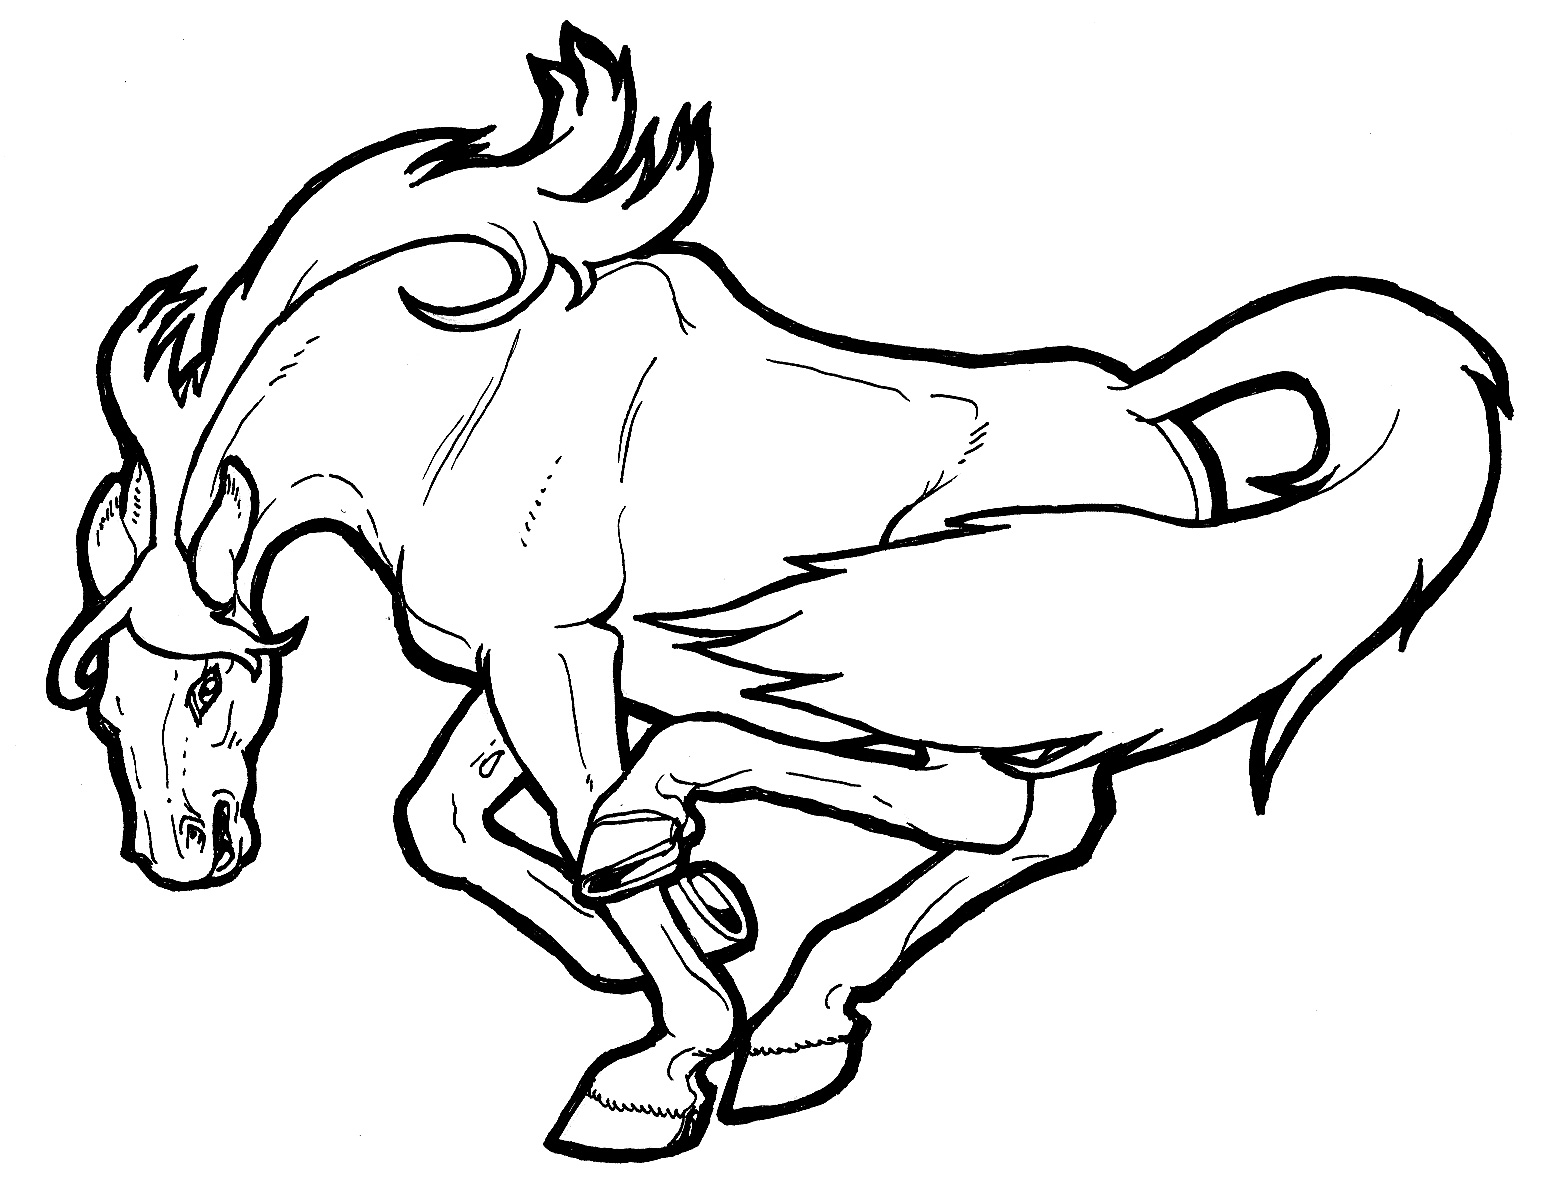 coloring pages printable horses | Coloring Pages Of Horses Printable | Free Coloring Sheets